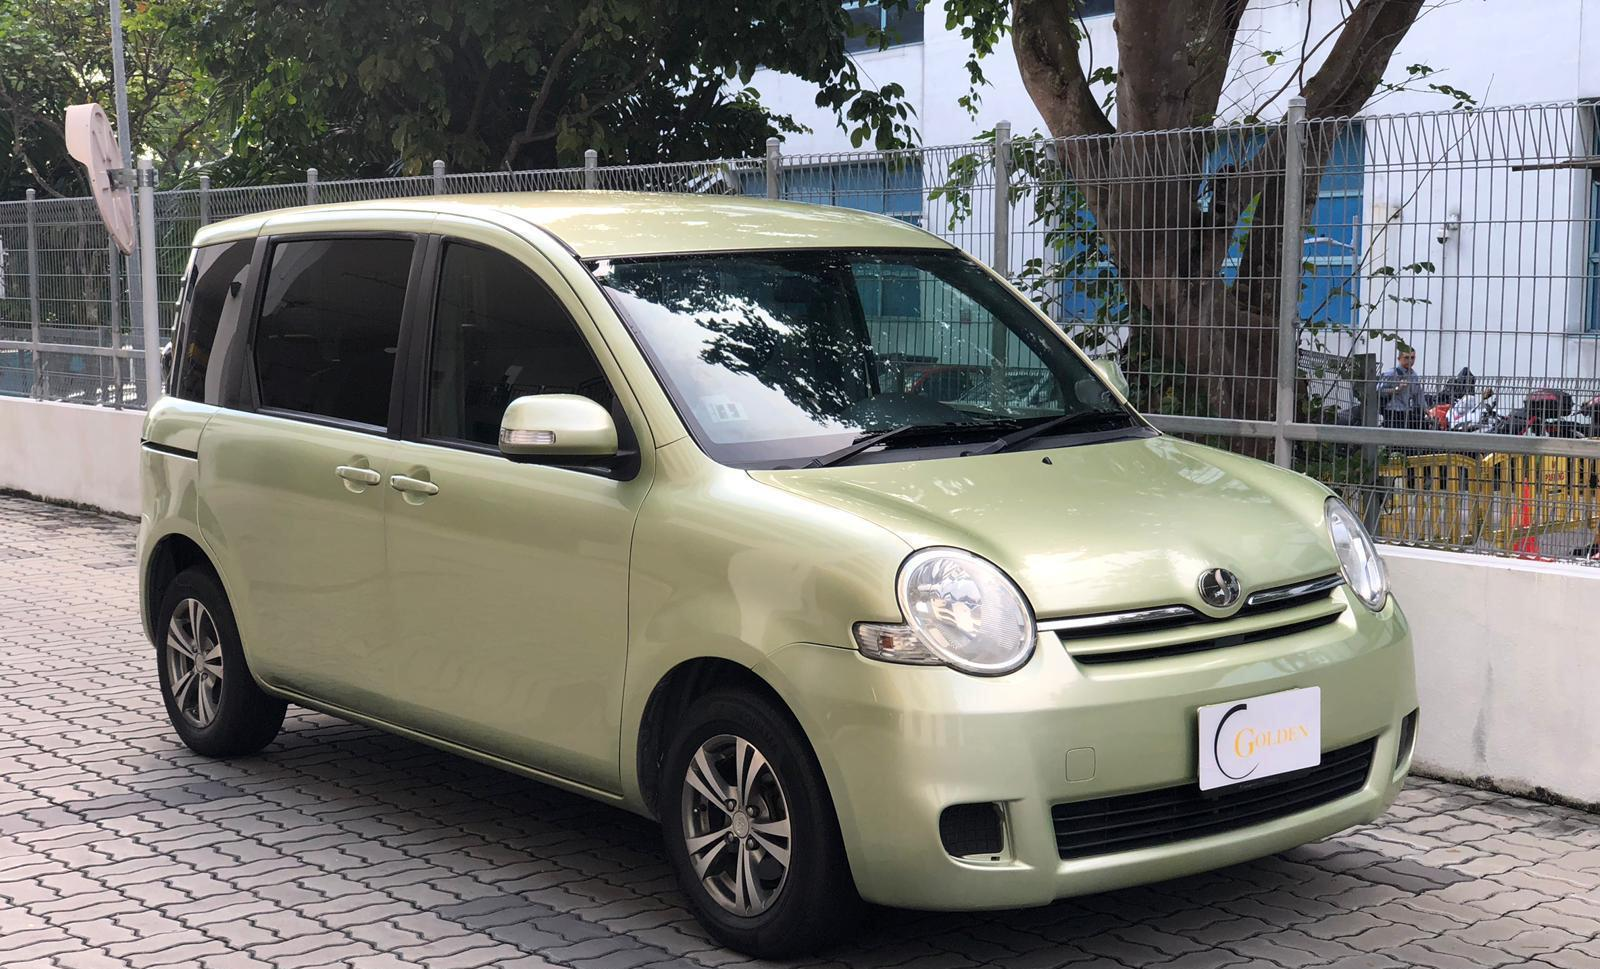 Toyota Sienta rent Grab Rental Gojek Or Personal Use low price and CHEAPEST RENTAL